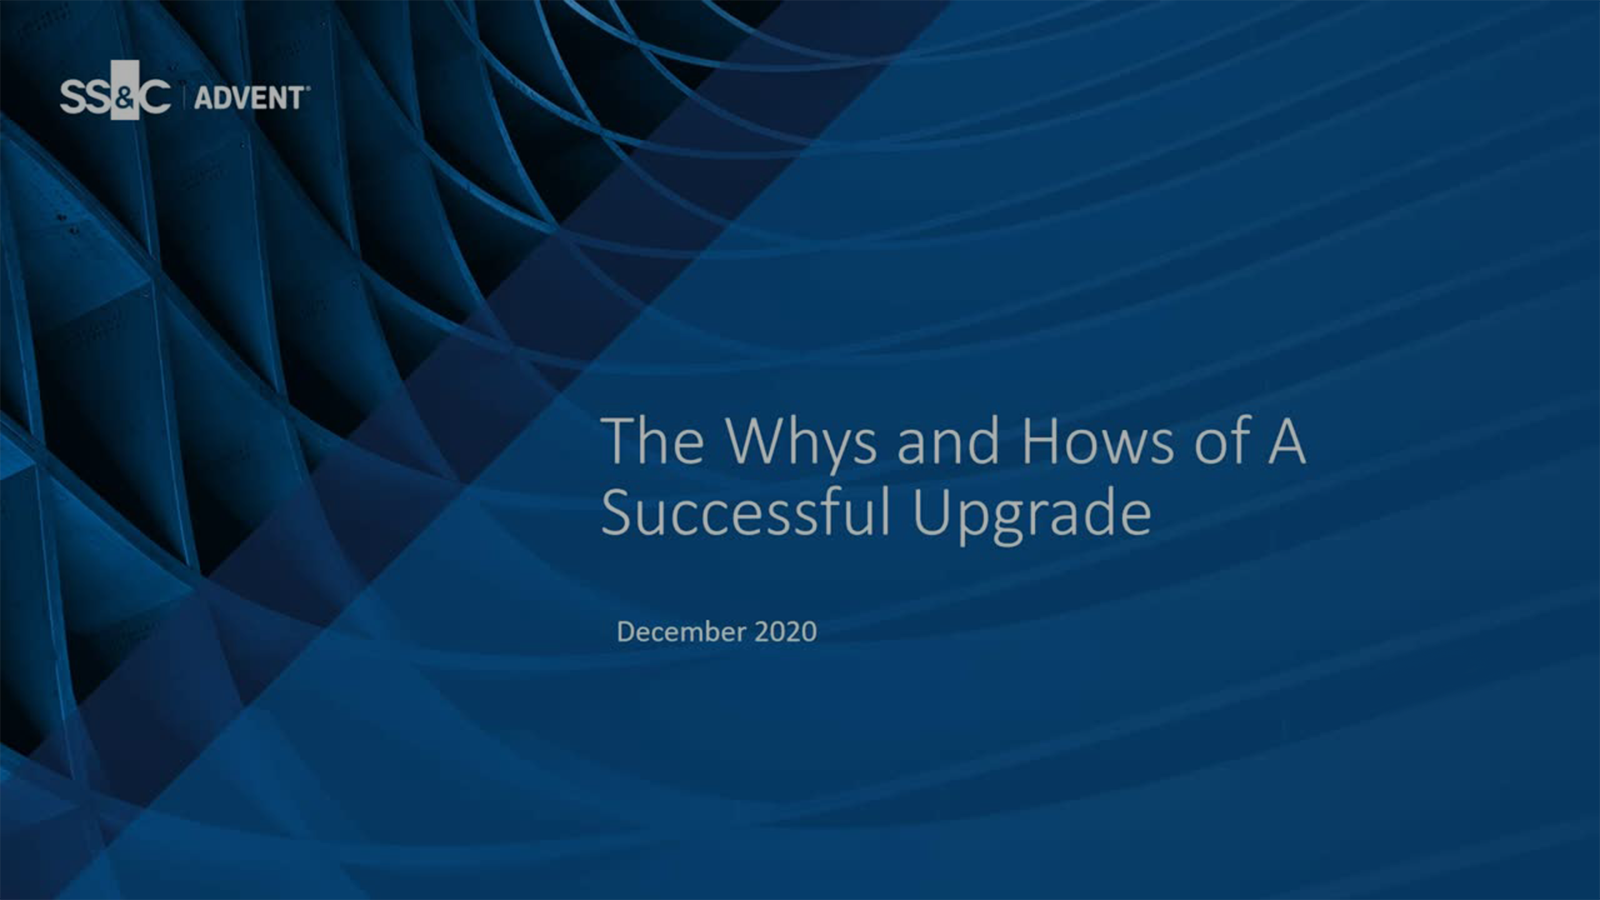 poster image for The Whys and Hows of a Successful Upgrade